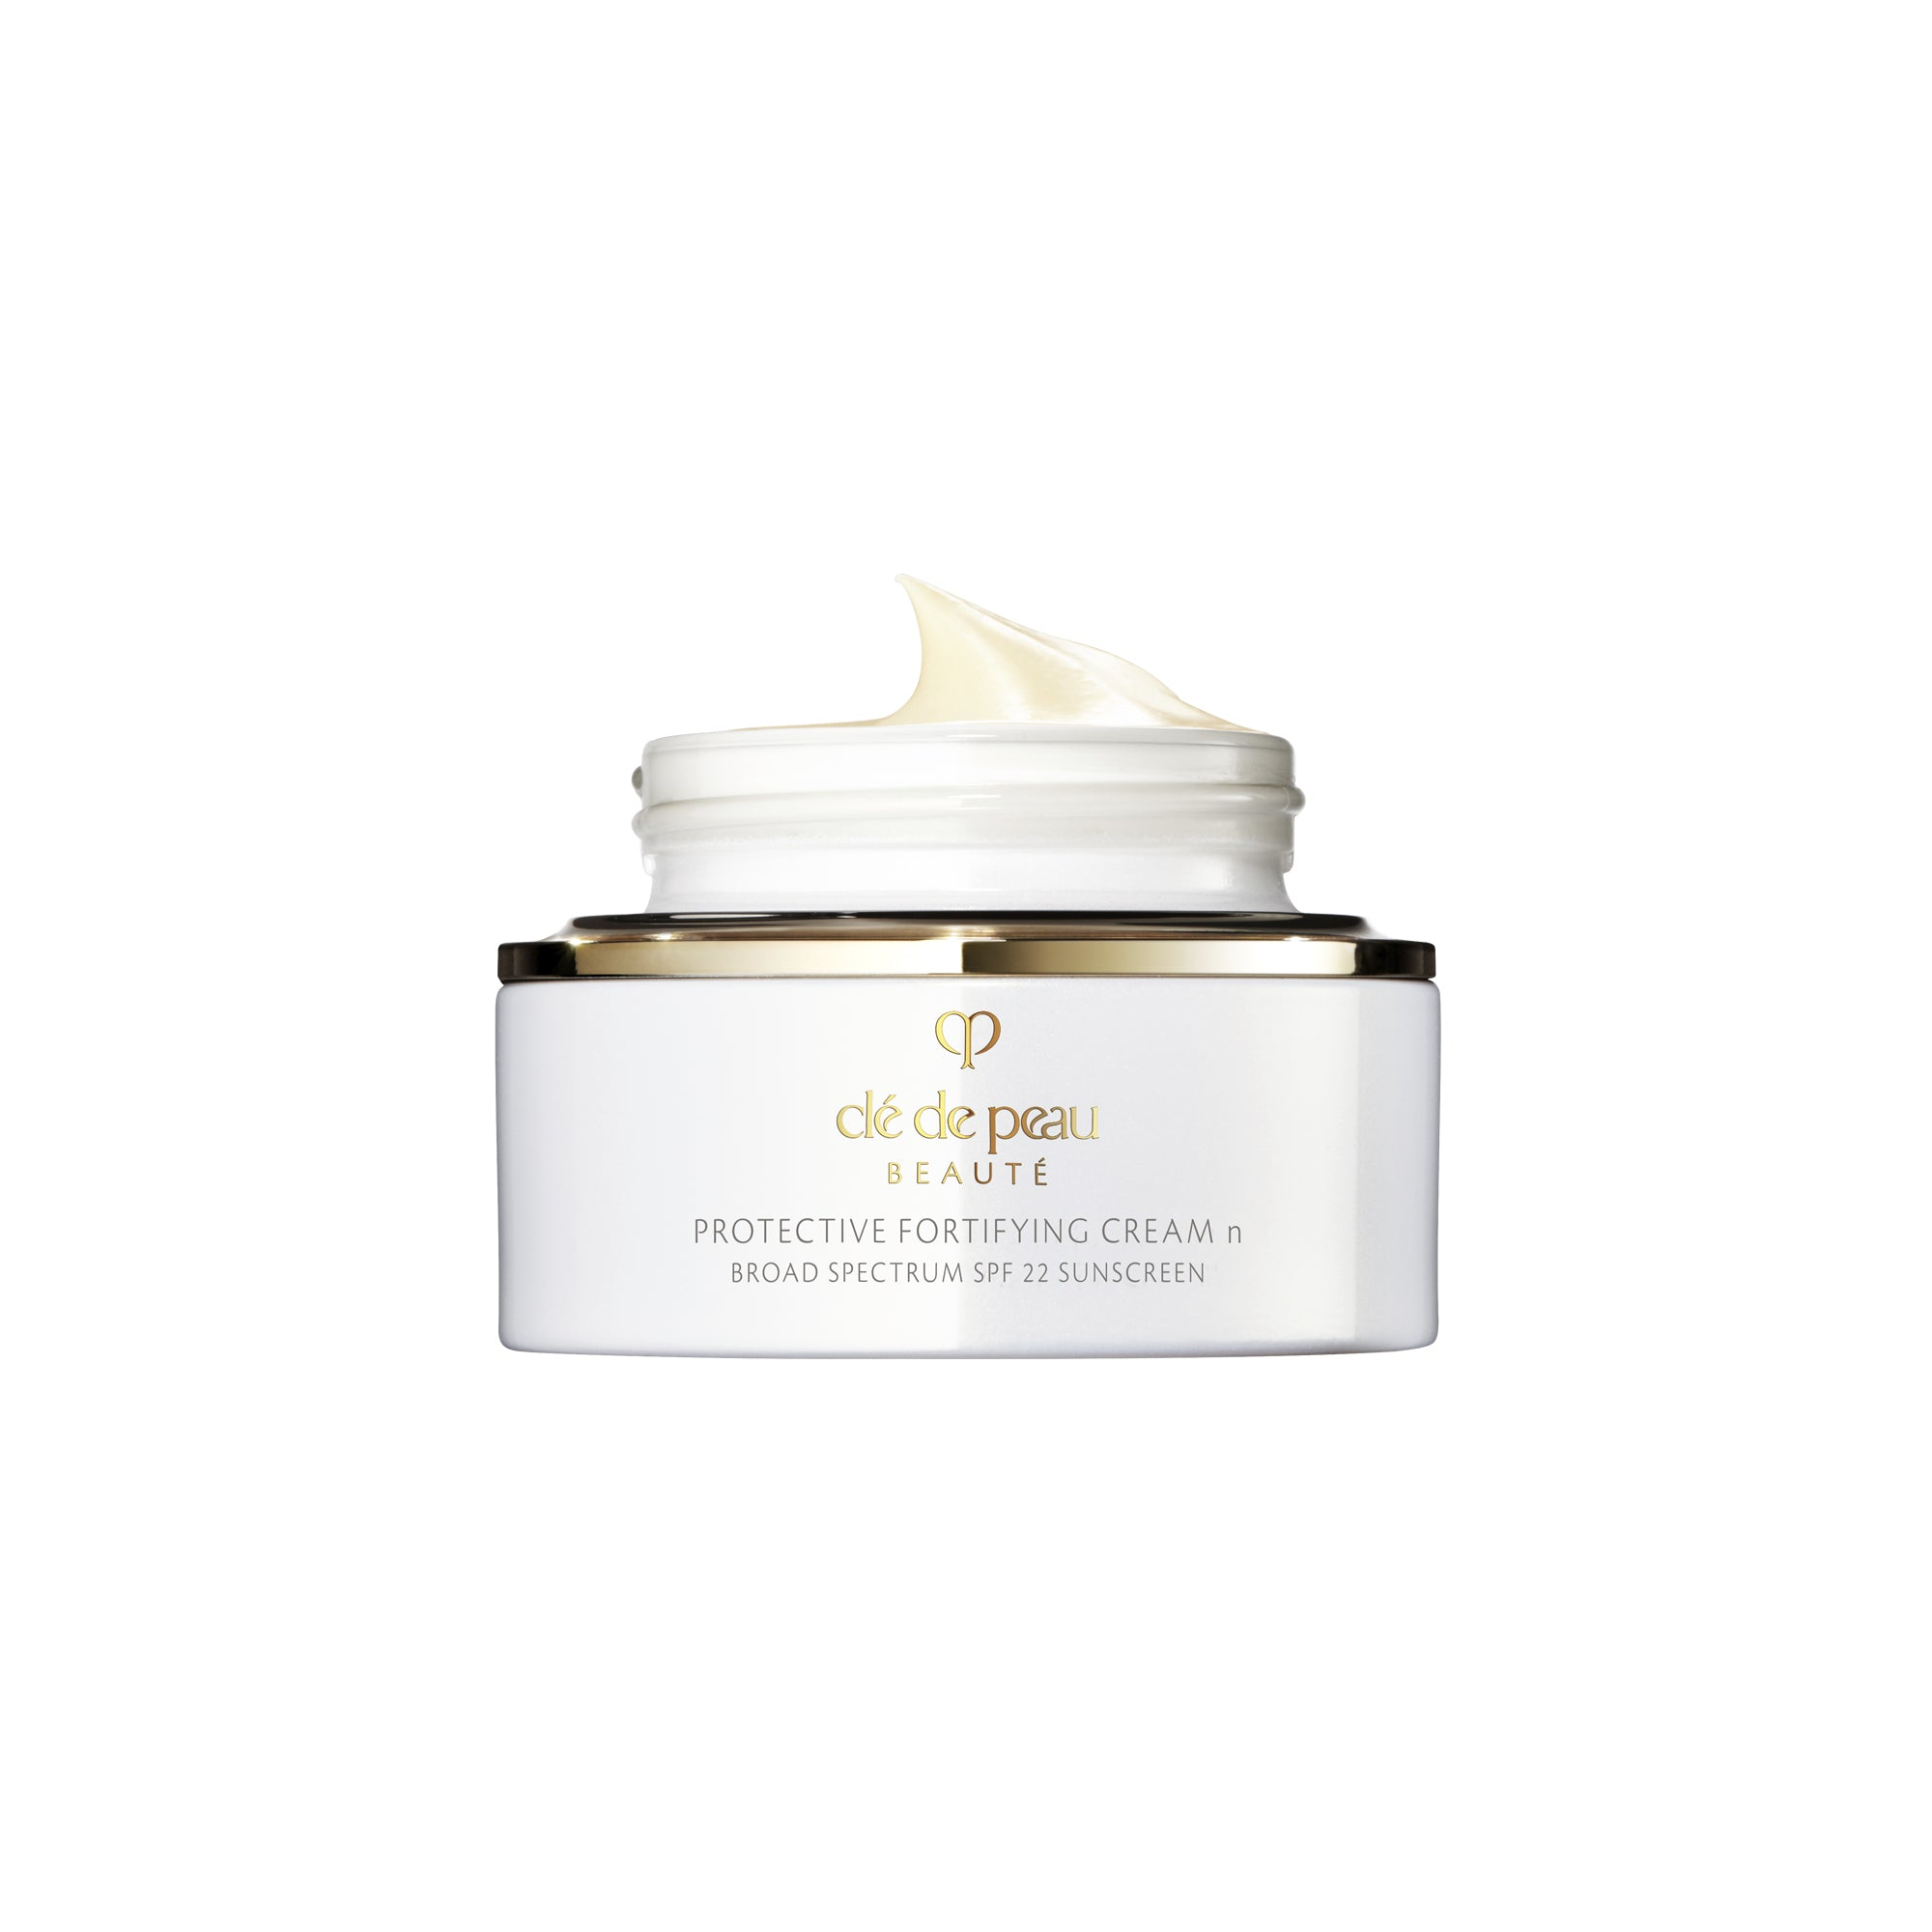 Cle de Peau Protective Fortifying Cream - SPF 22 (1.7 oz )